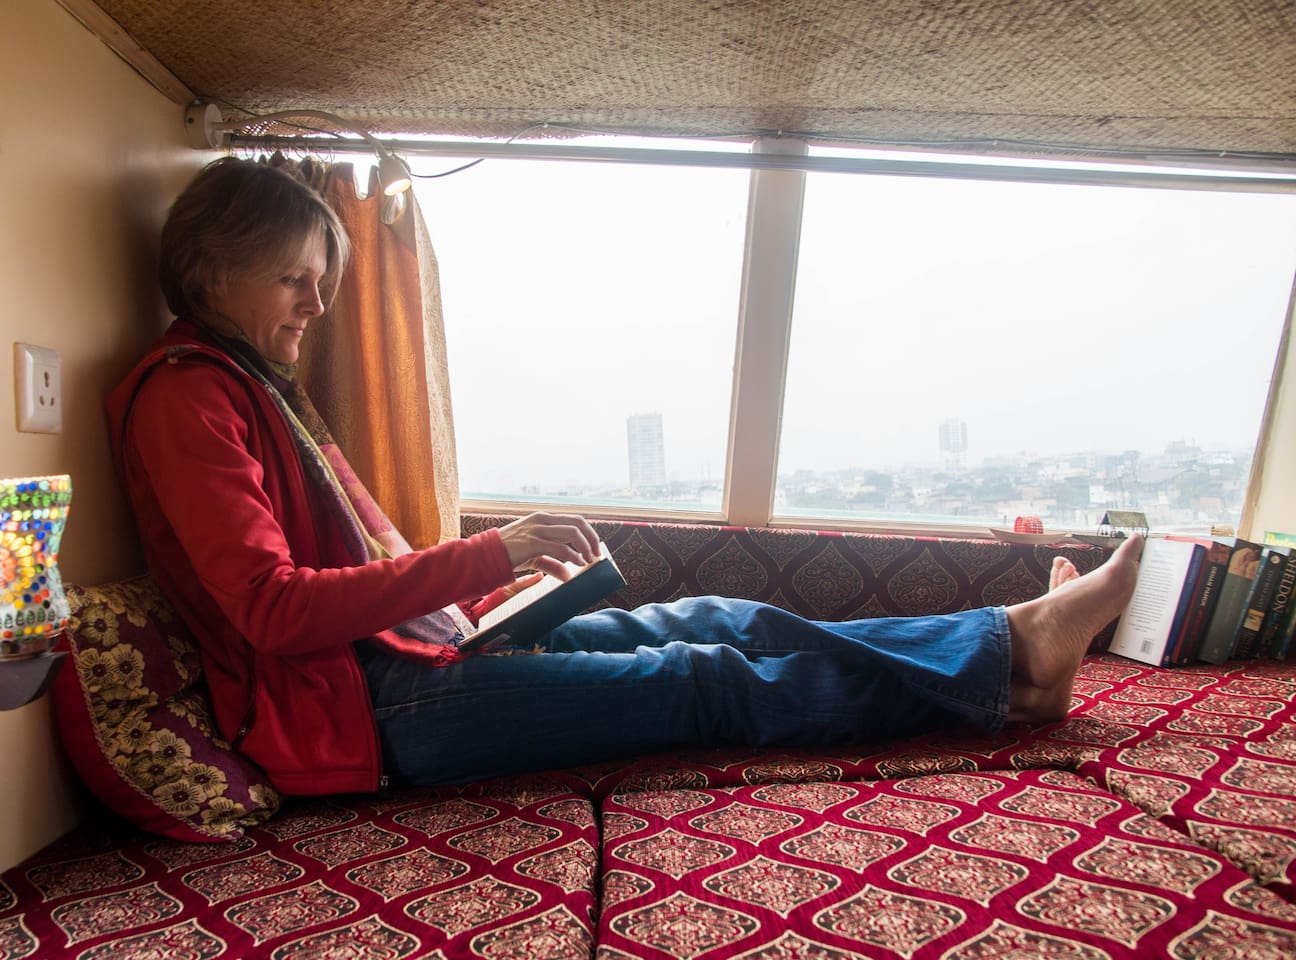 Our Guest Lisa lounging with a favourite book in the Sundeck.